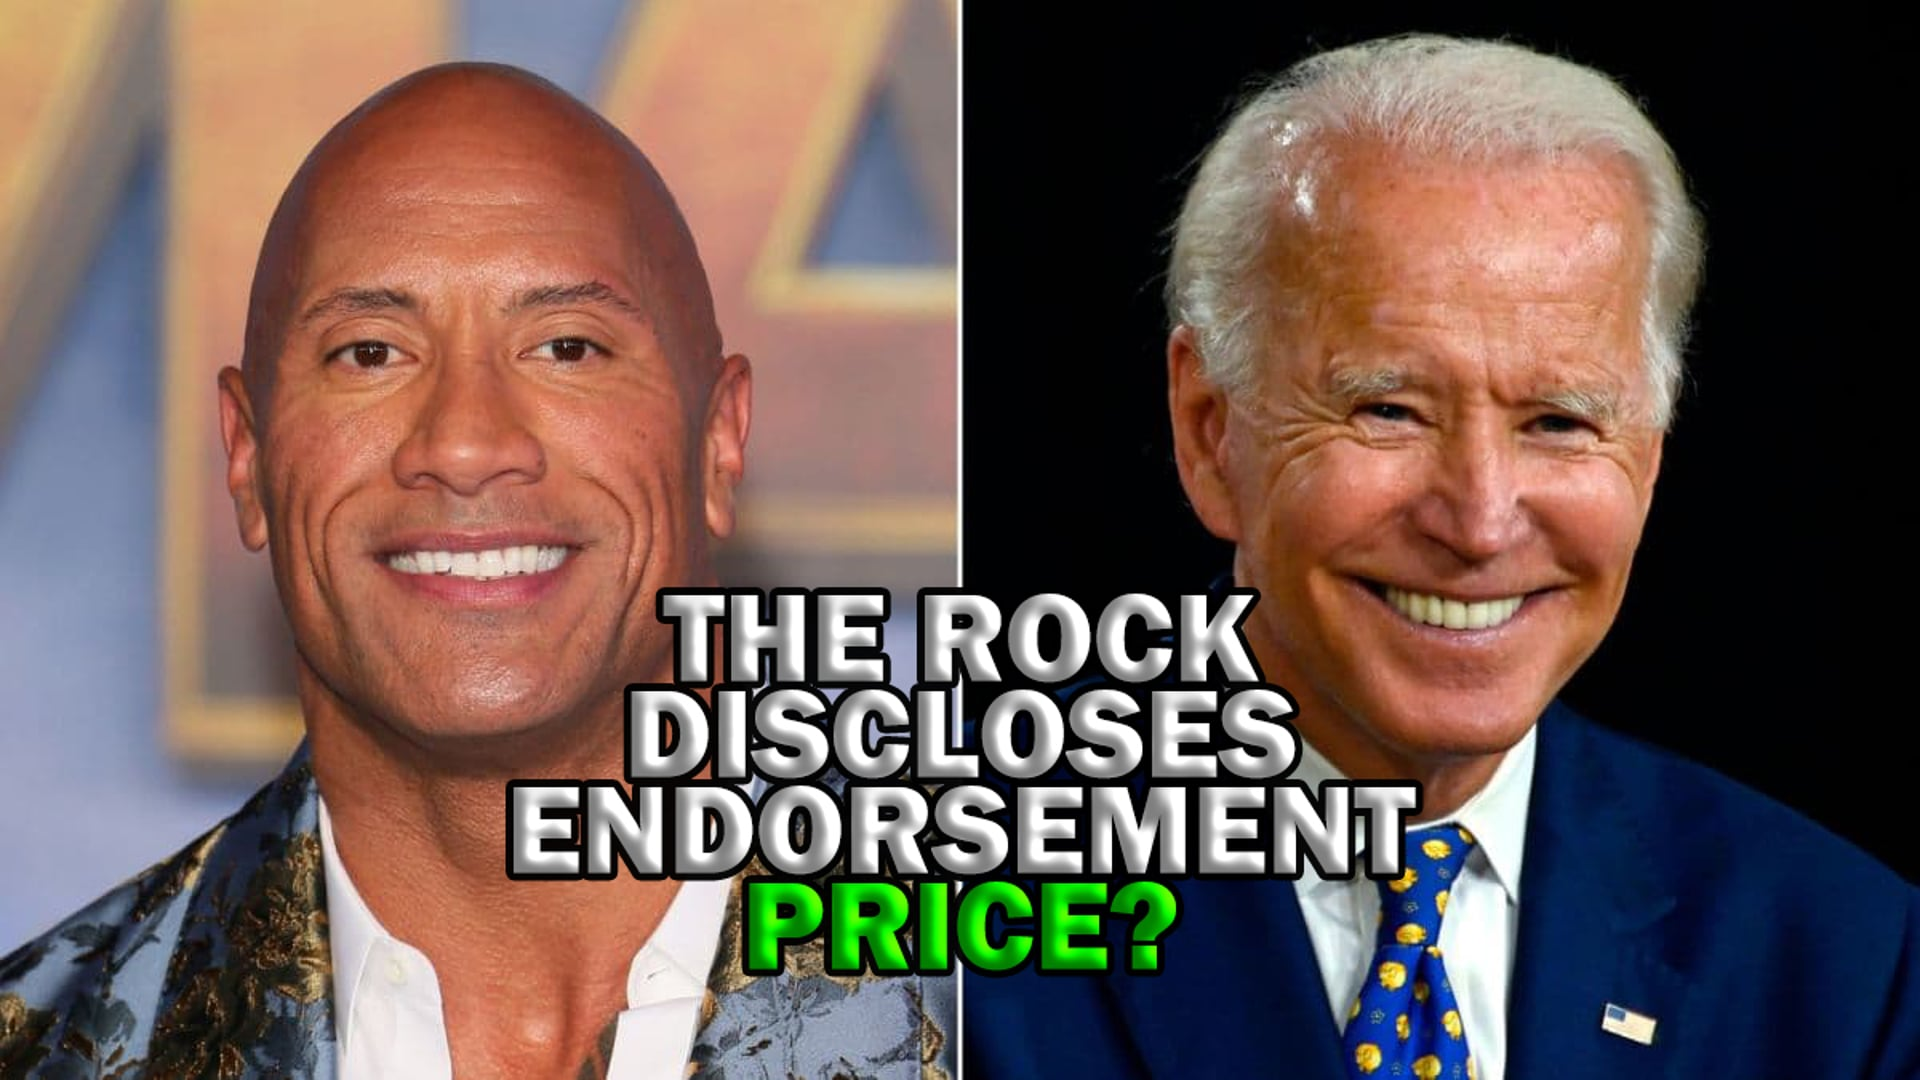 The Rock aka DJ Discloses The Price Tag for His Presidential Endorsement